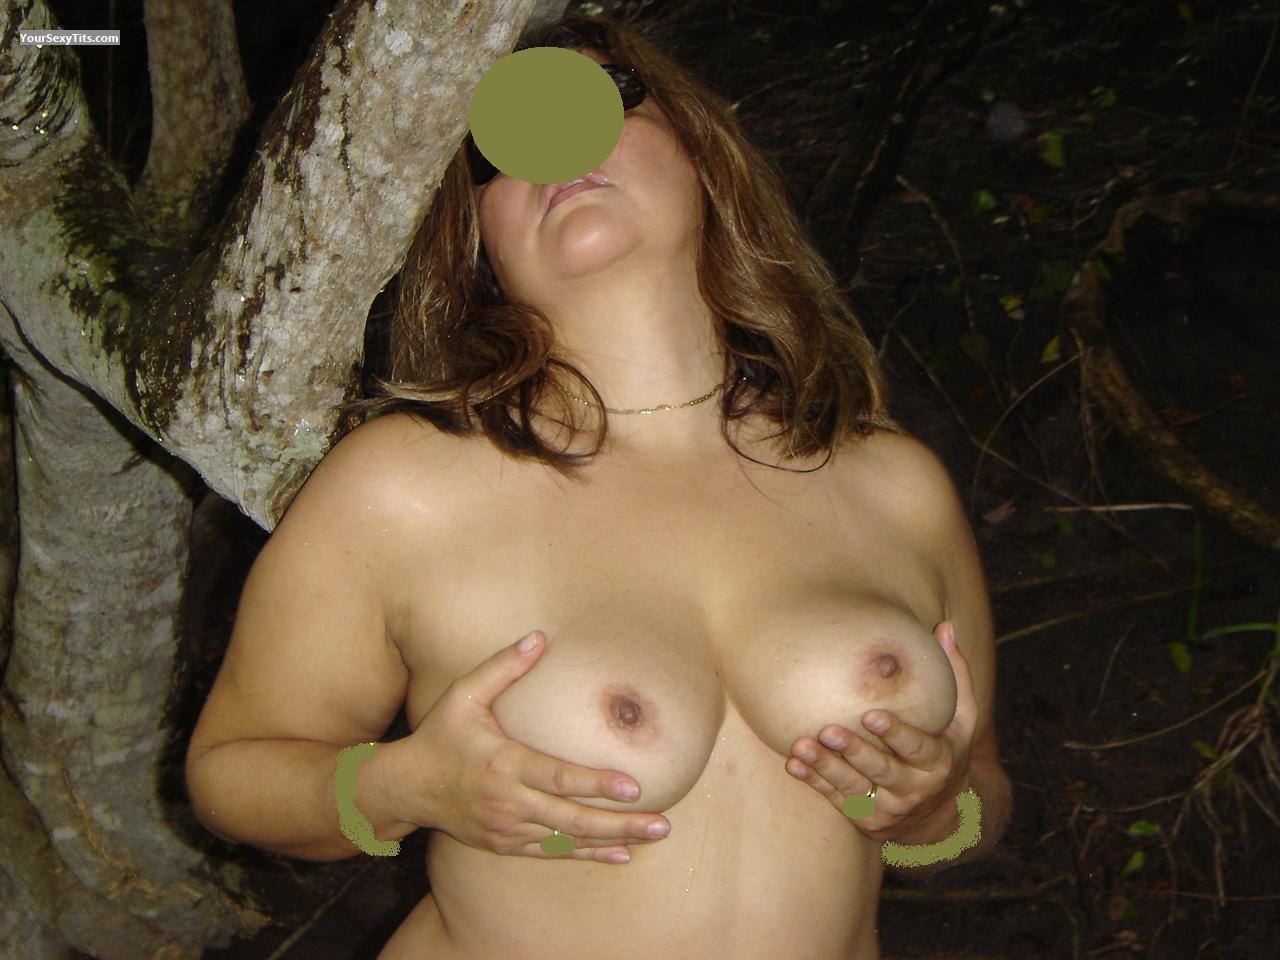 Tit Flash: Wife's Medium Tits - Brionna from Costa Rica